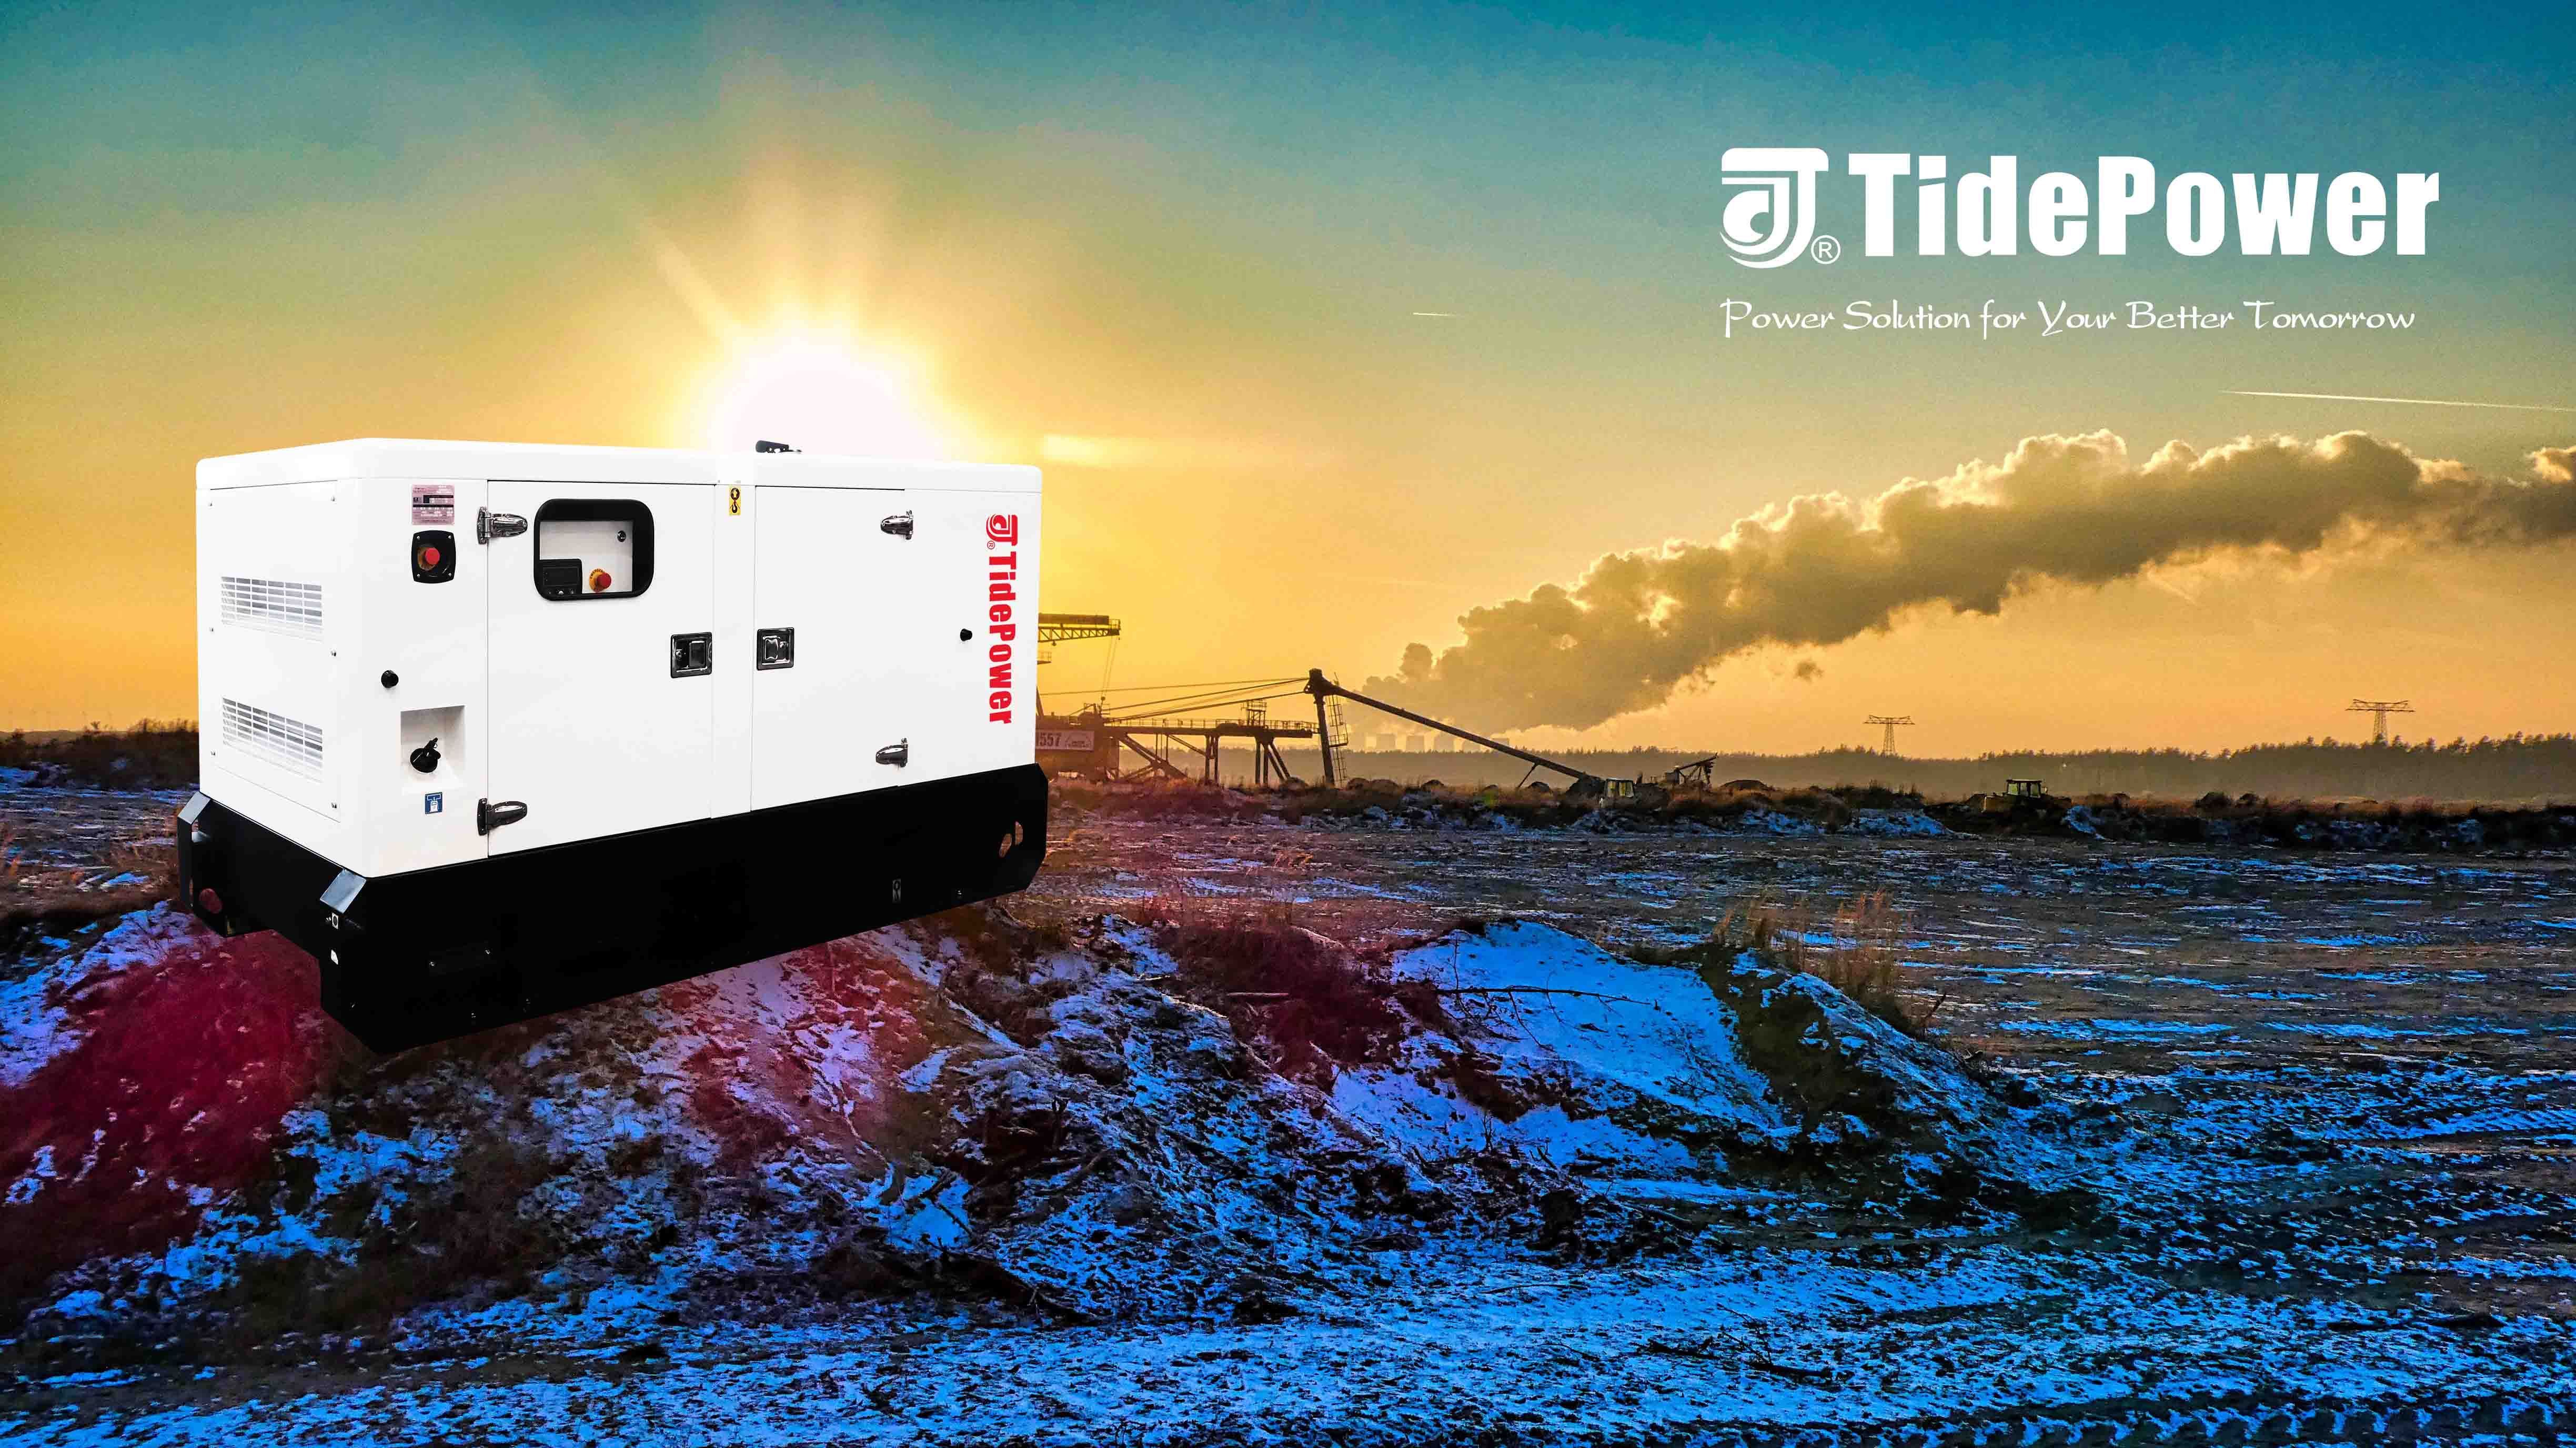 TidePower Product